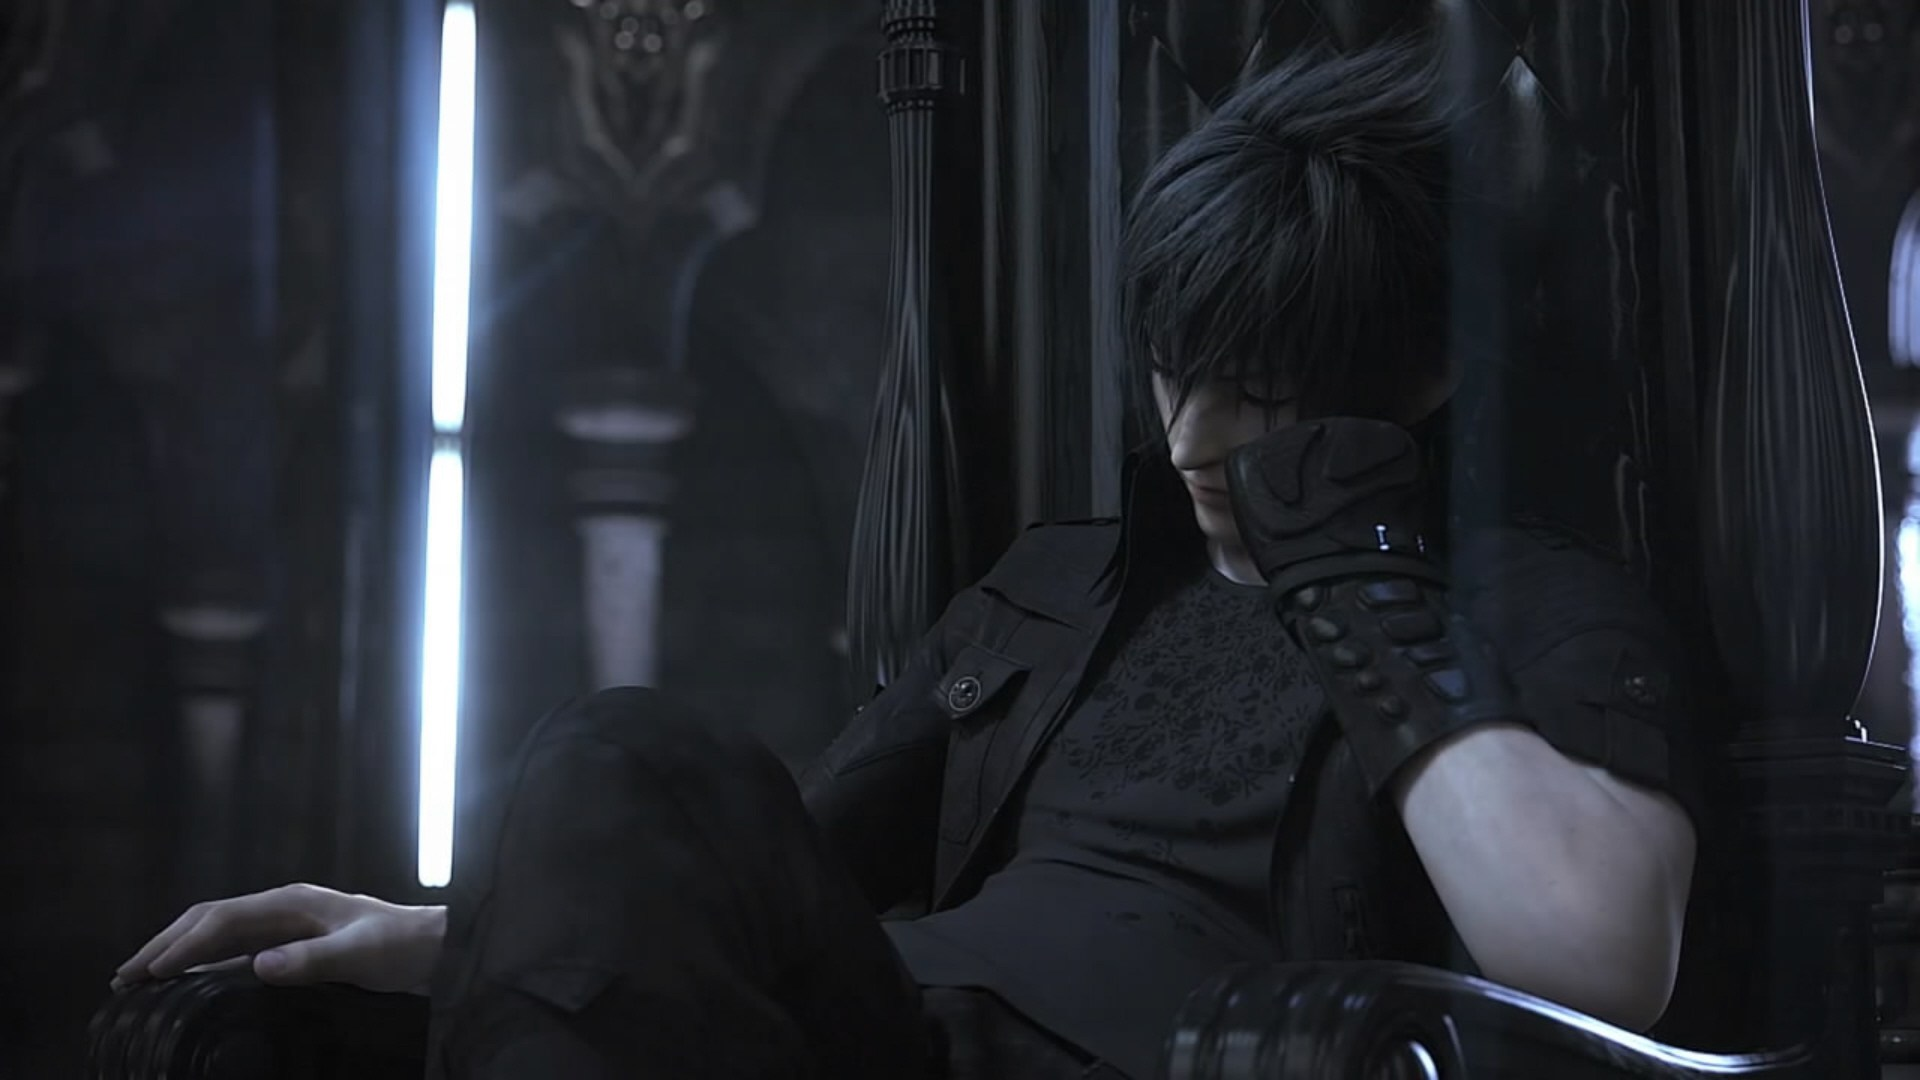 Final Fantasy Versus Xiii Waiting Impatiently On Throne Screenshot